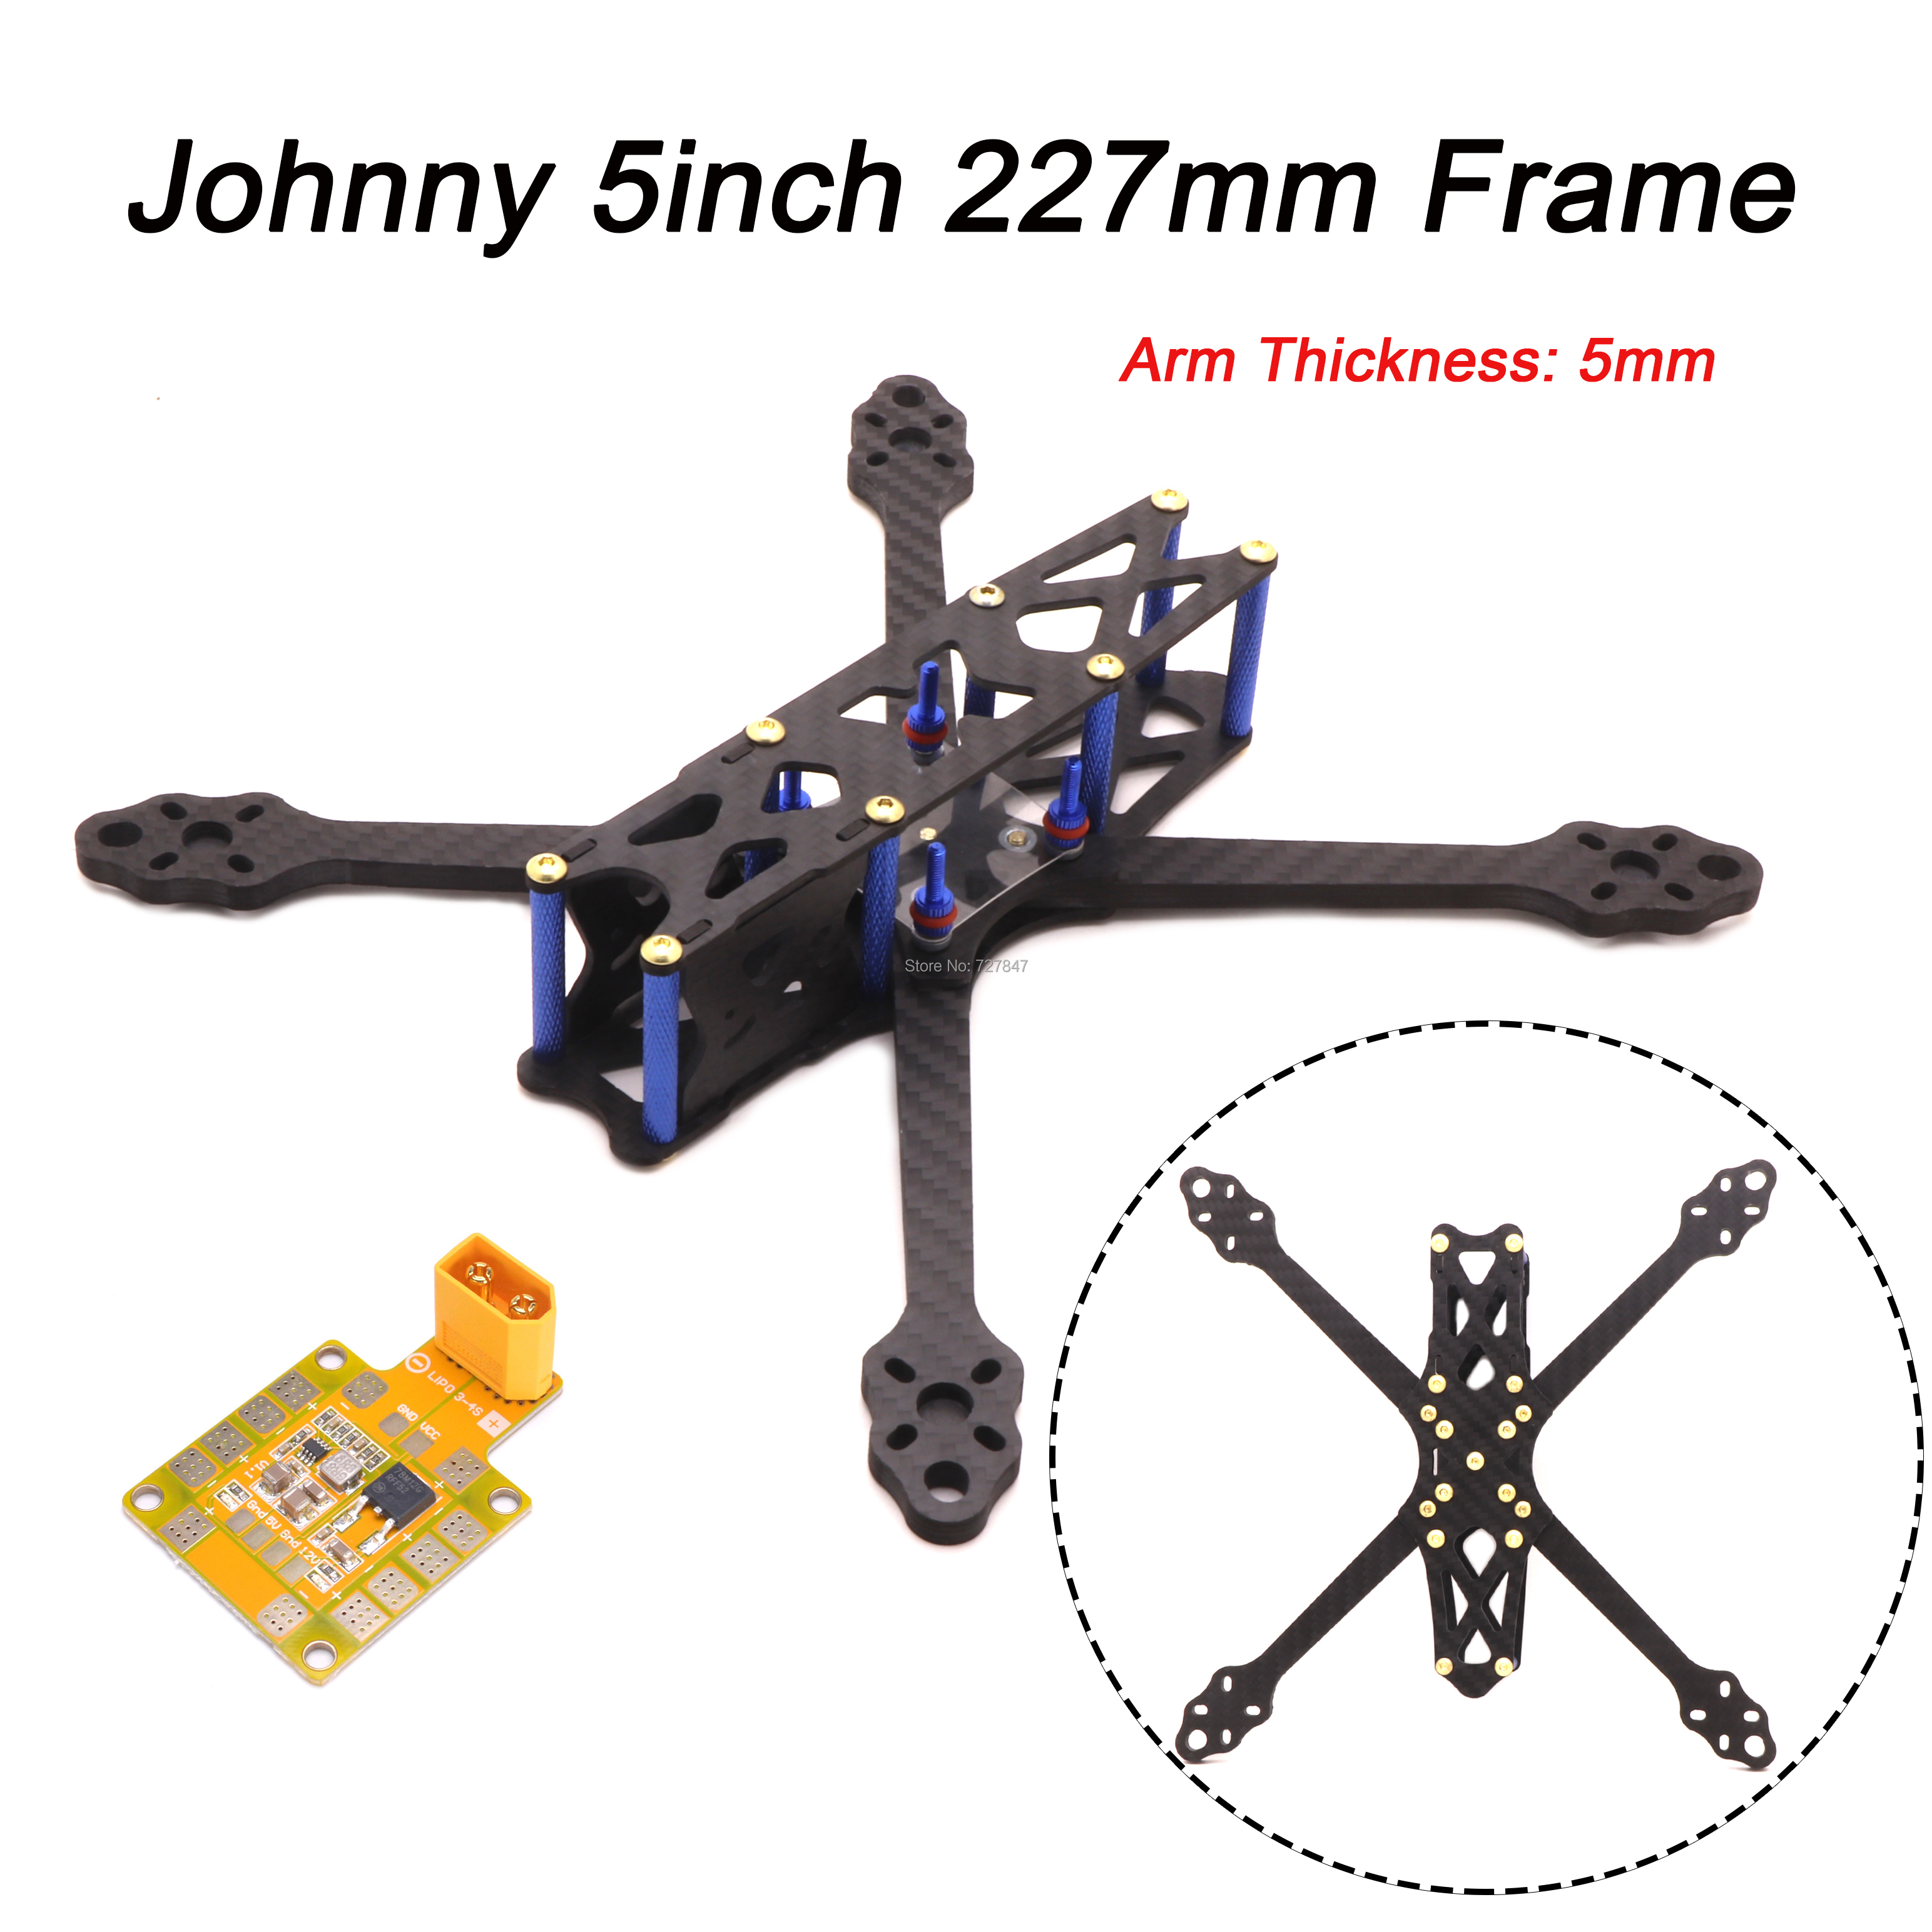 Johnny 2 5inch X5 230 Wheelbase 227mm With 5mm Arm Pure Carbon Fiber FPV Quadcopter Frame 5V / 12V PDB For FPV Racing Drone